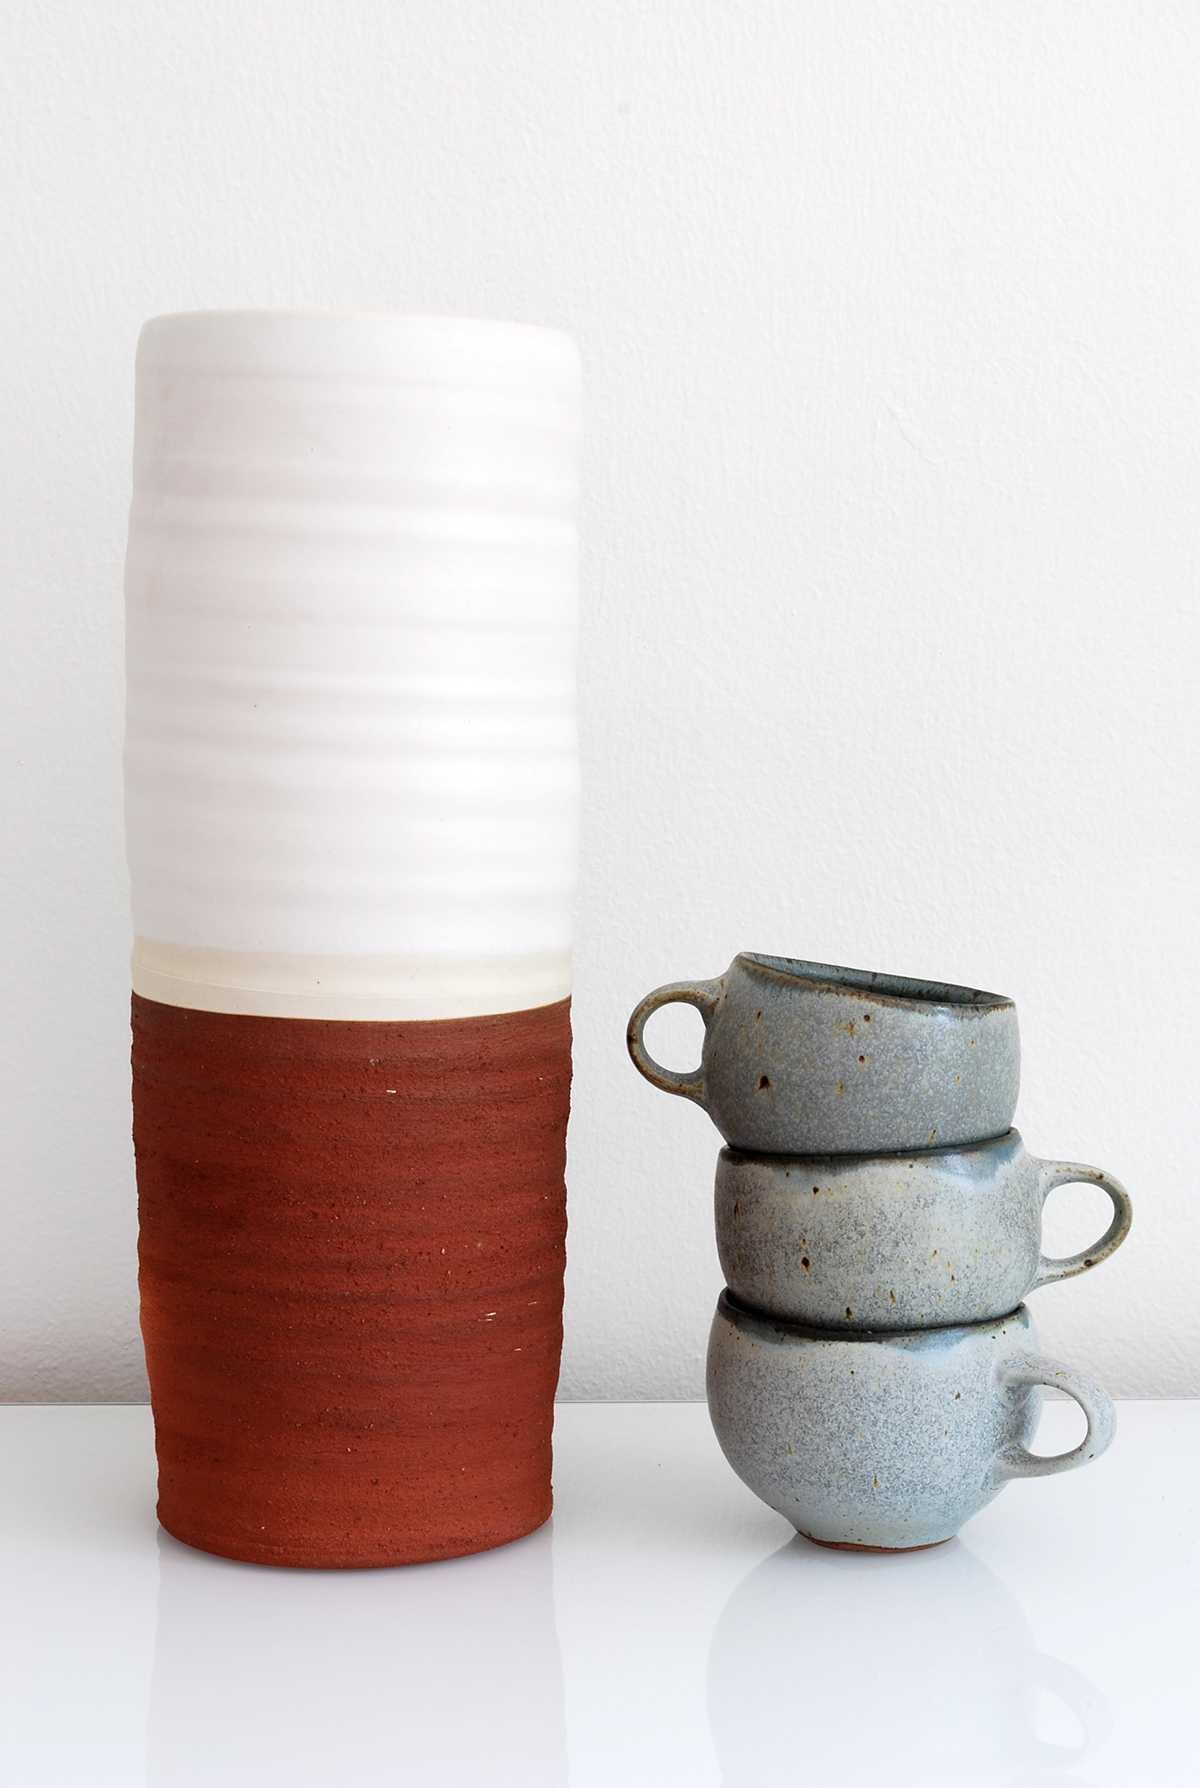 a10_mdba_mdby_manufactured_ceramics_wood_concrete_sculptures_phil_finder_red_white_cups